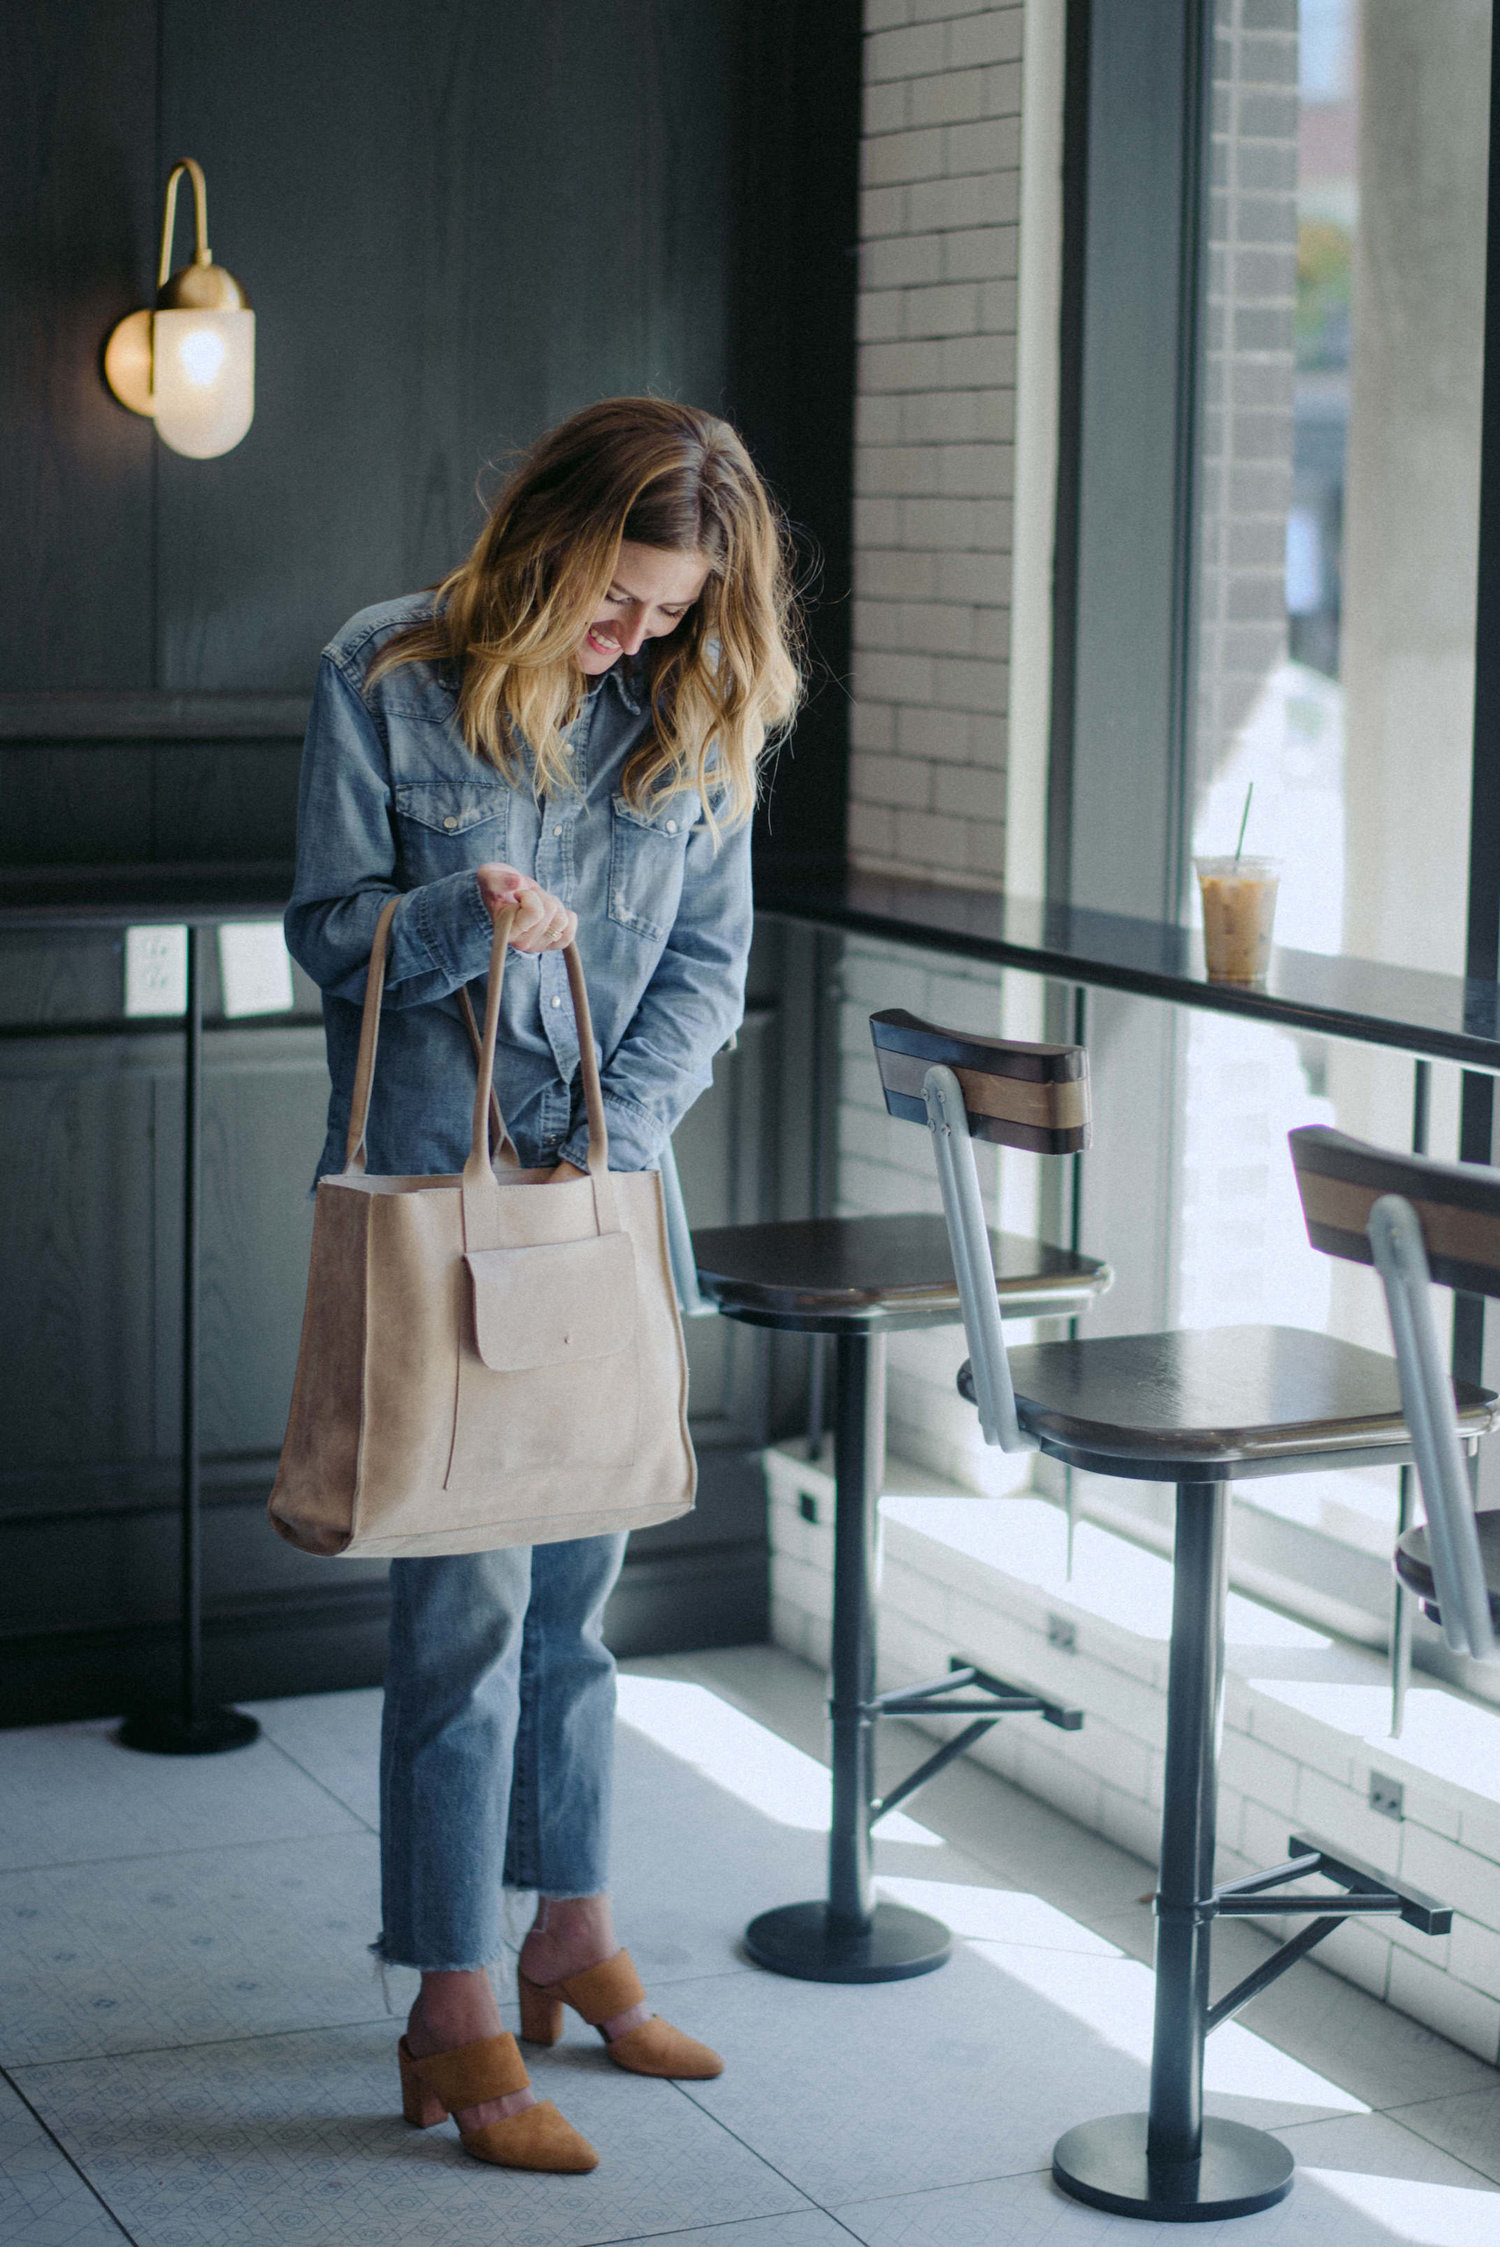 15 Ethical Alternatives To Fast Fashion